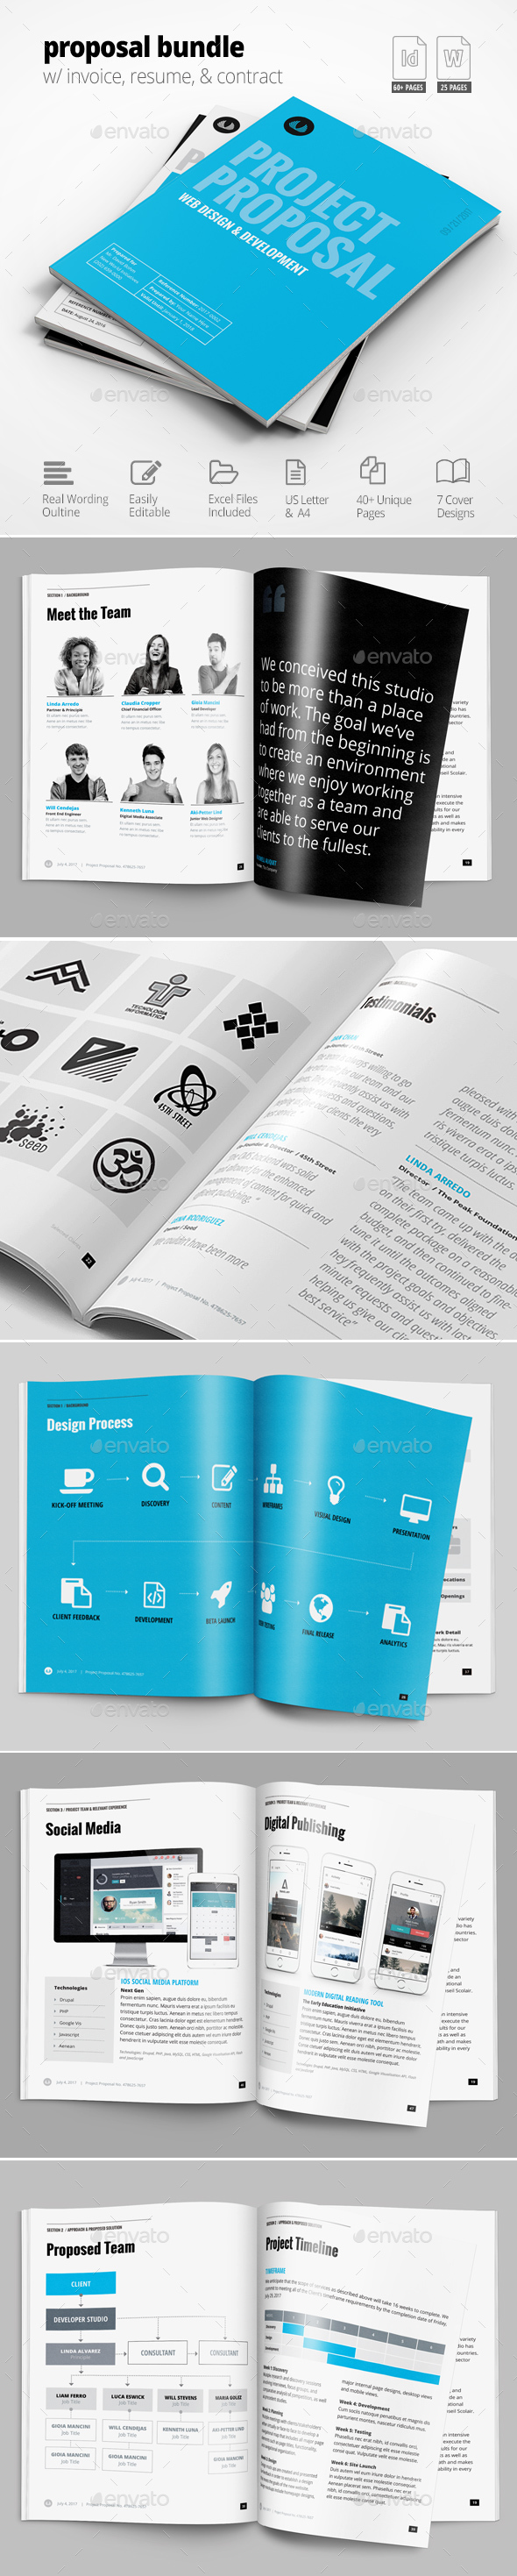 Business Proposal Template w/ Resume & Invoice 60+ Pages